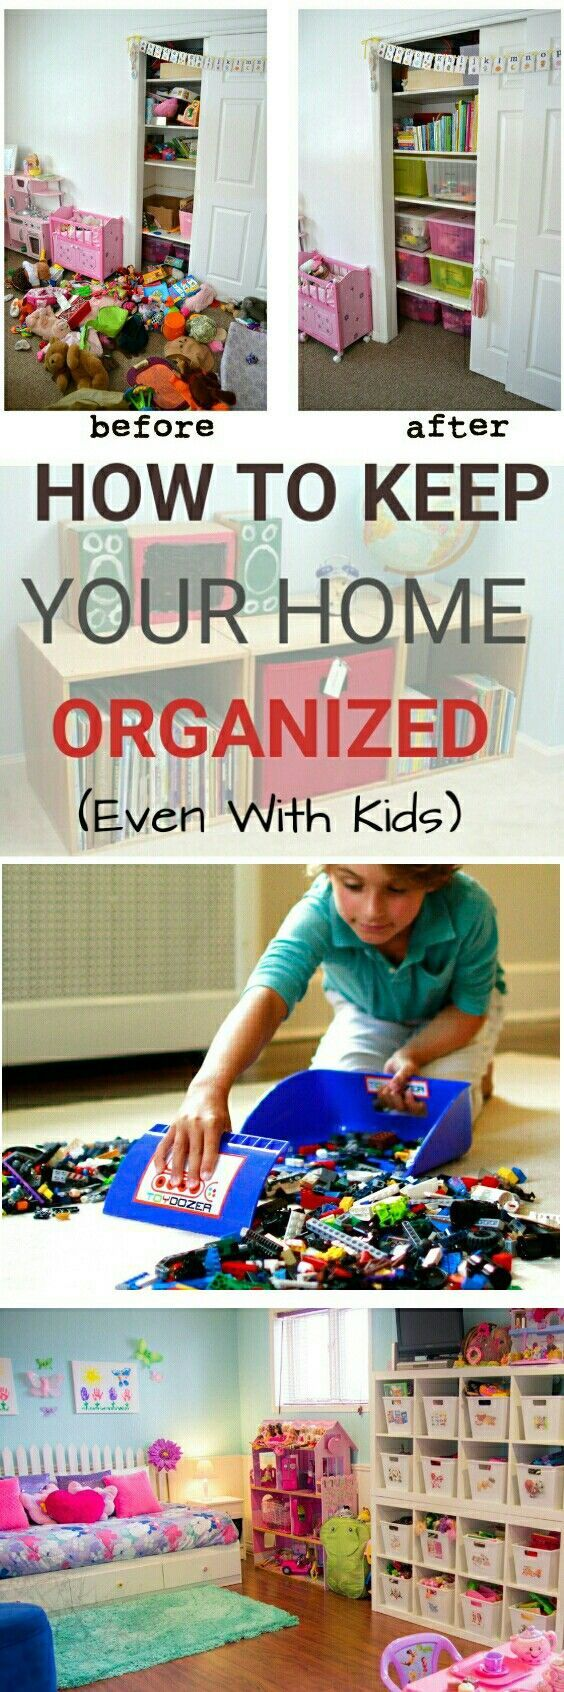 Frugal tips for organizing kids rooms thrifty nw mom fresh bedrooms - 7 Daily Habits To Keep Your Home Organized Even With Kids